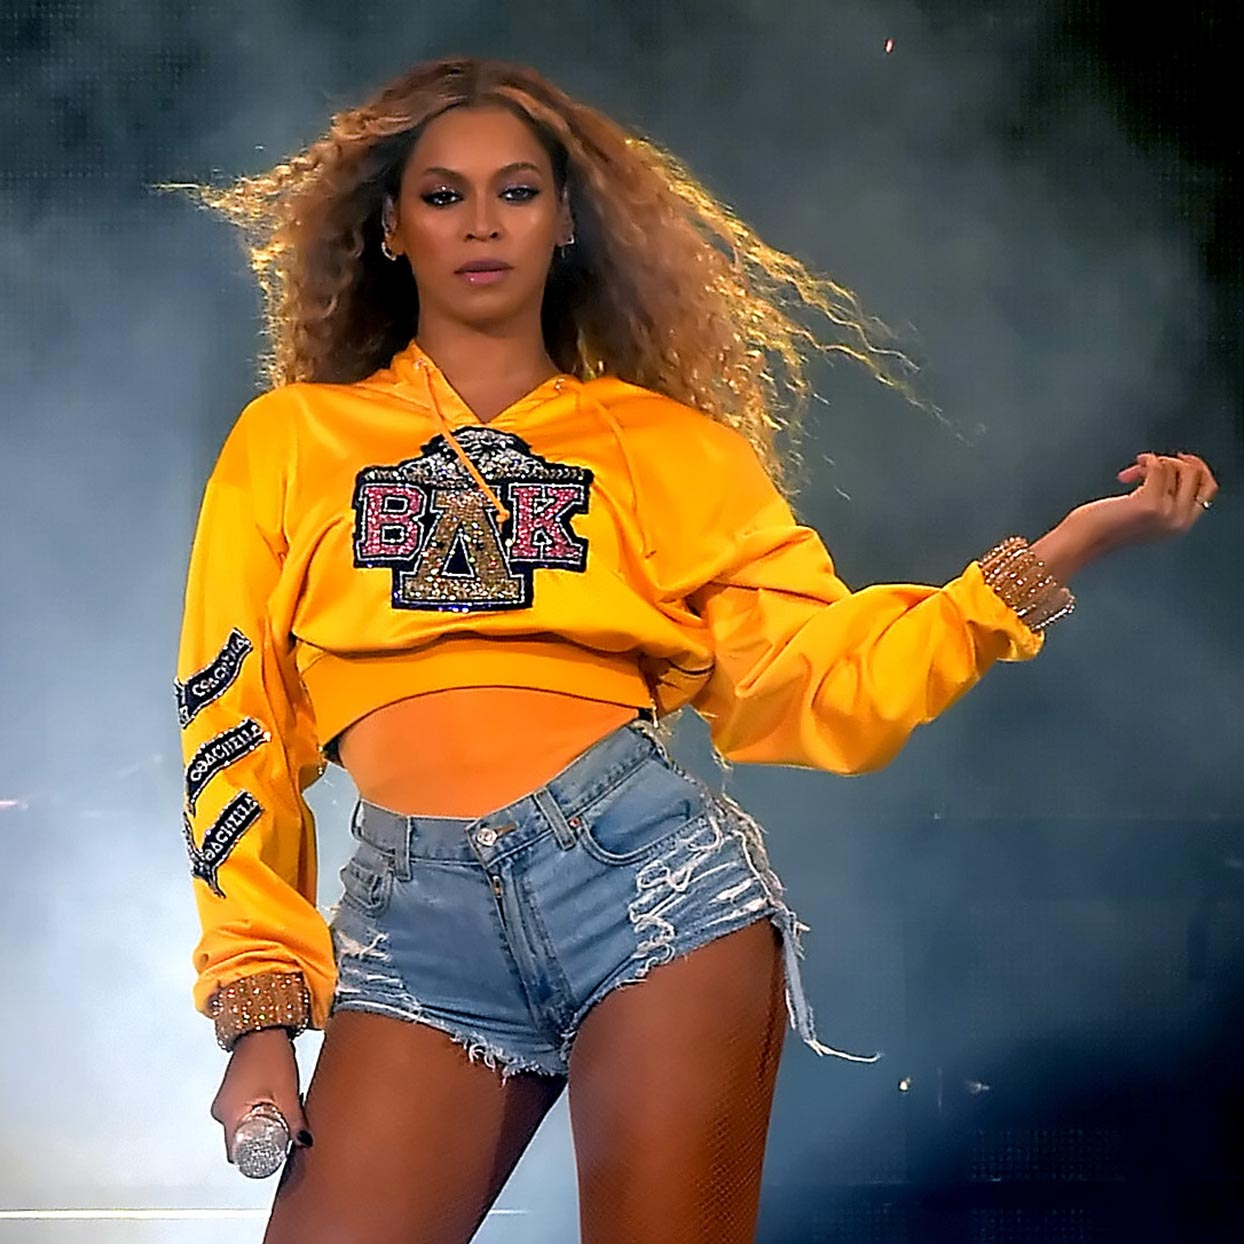 Beyonce Knowles performs onstage during 2018 Coachella Valley Music And Arts Festival Weekend 1 at the Empire Polo Field on April 14, 2018 in Indio, California